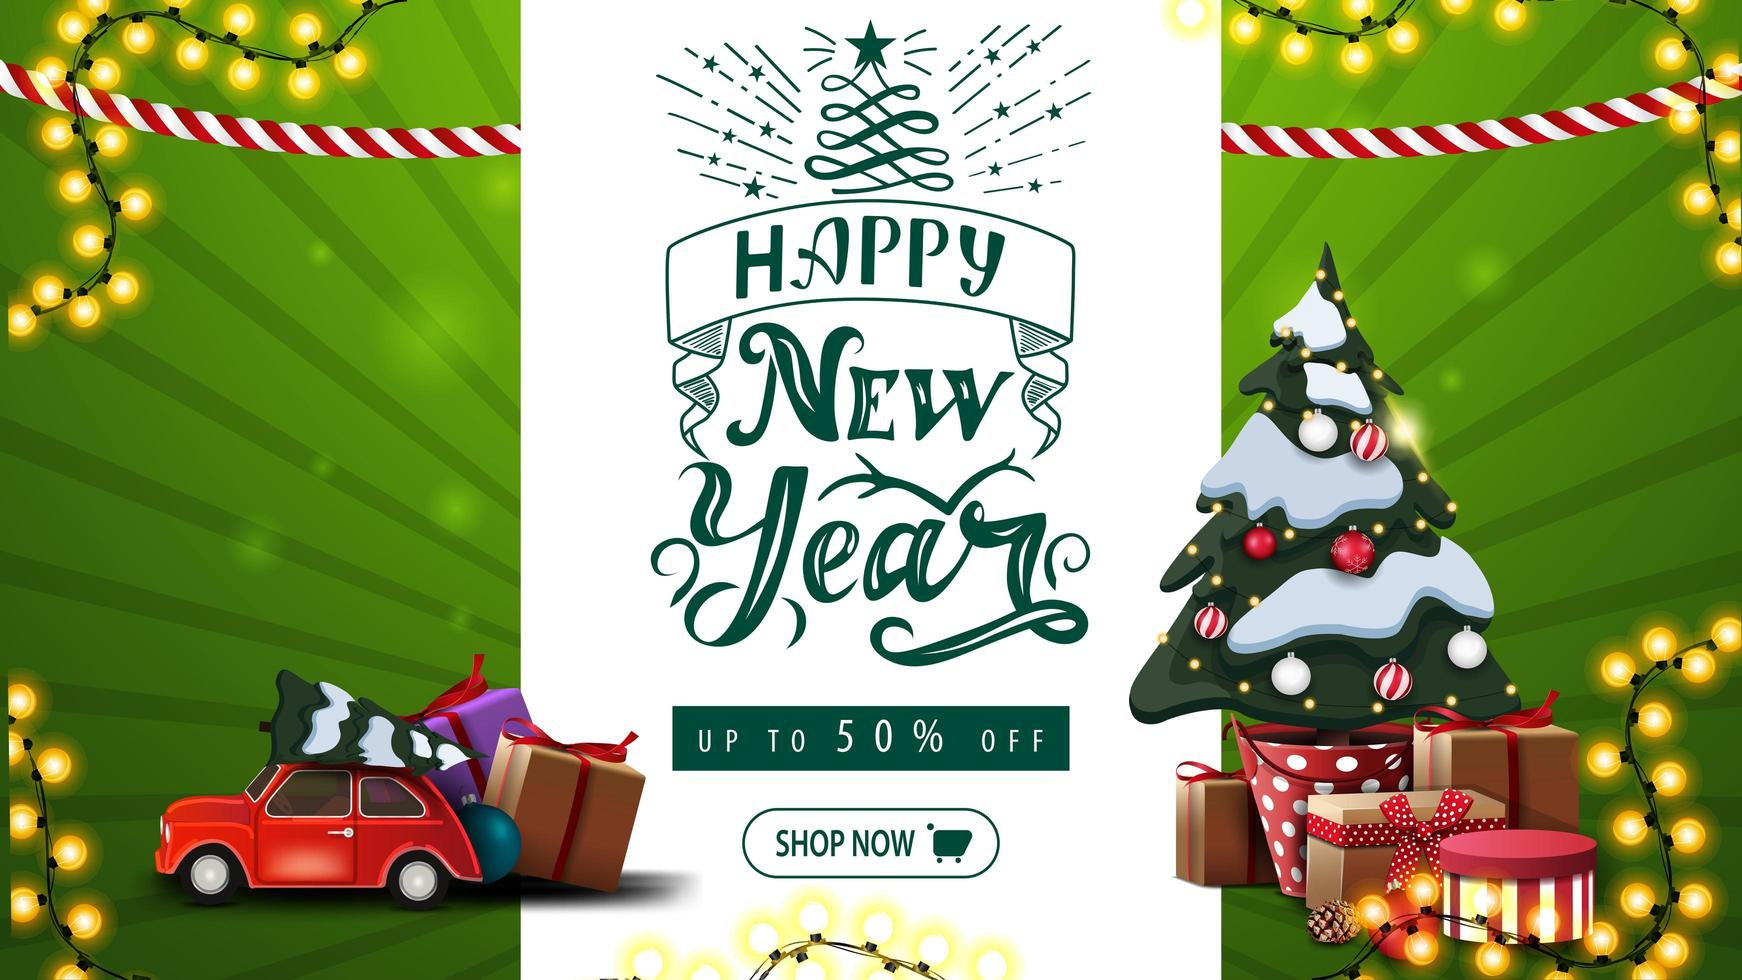 Happy New Year, up to 50 off, green greeting and discount banner with beautiful lettering, garlands, Christmas tree in a pot with gifts and red vintage car carrying Christmas tree vector